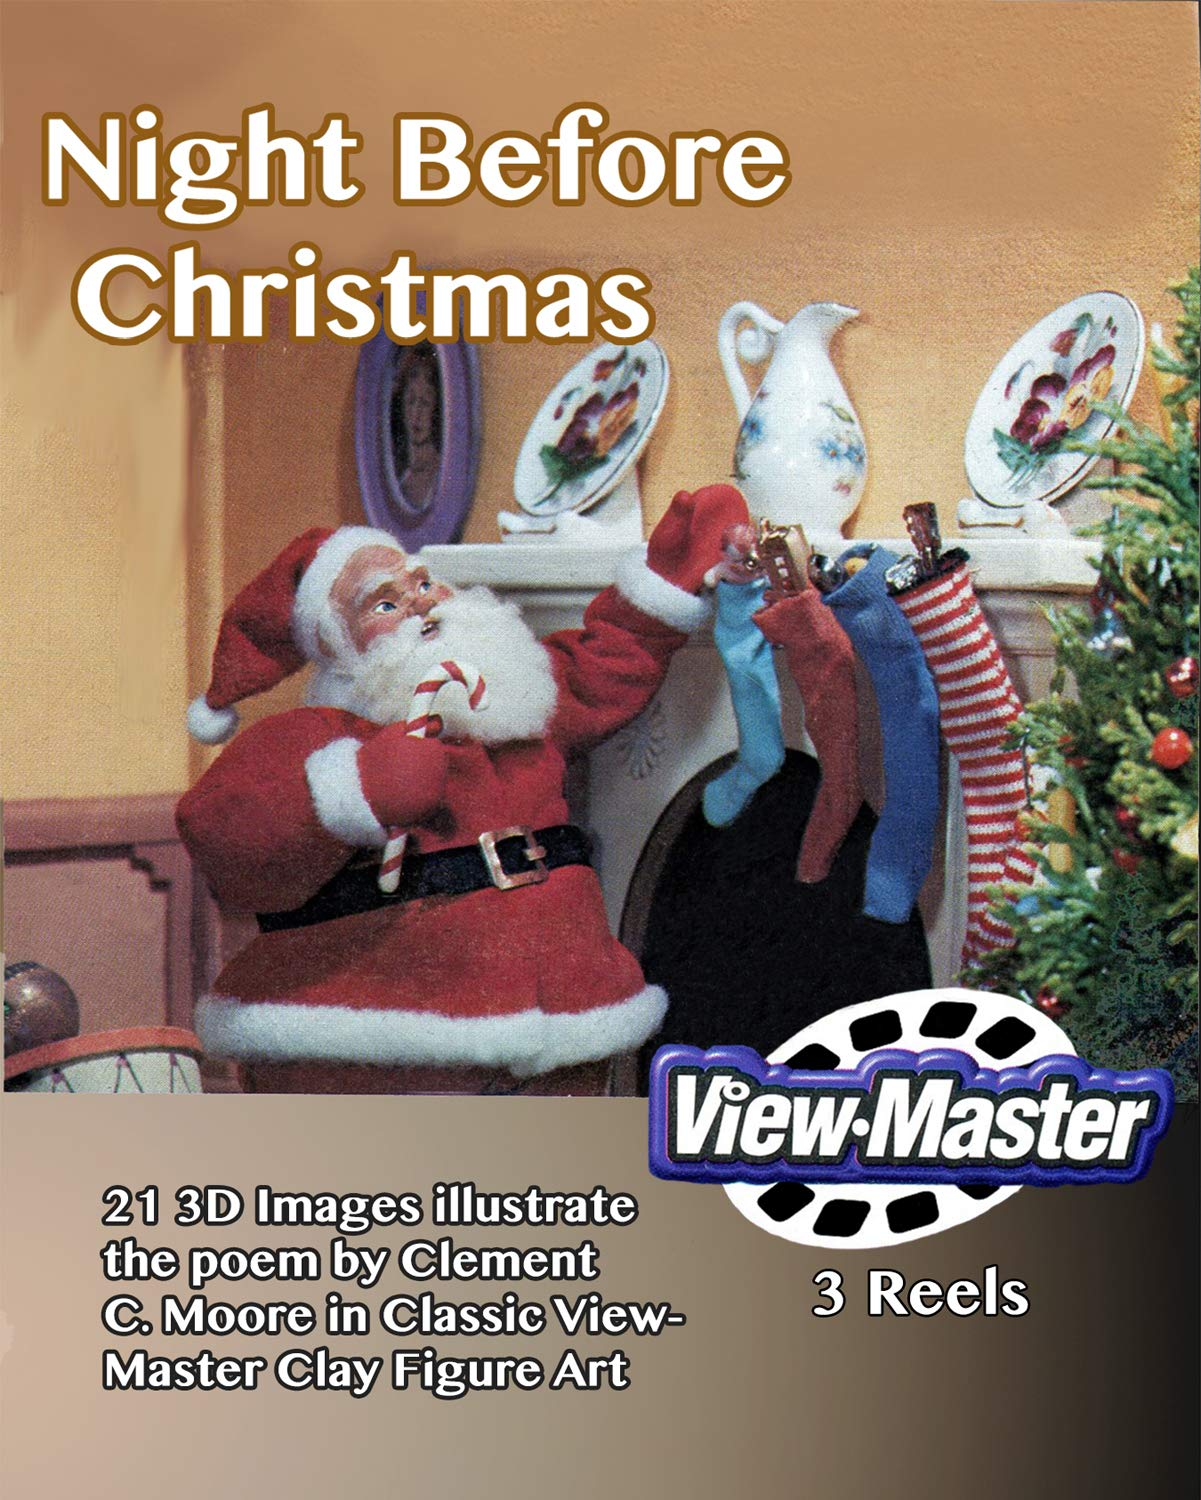 ViewMaster - Night Before Christmas - ''Visit from St. Nicholas'' illustrated poem by Clement C. Moore - 3 reels 21 3D Images by 3Dstereo ViewMaster